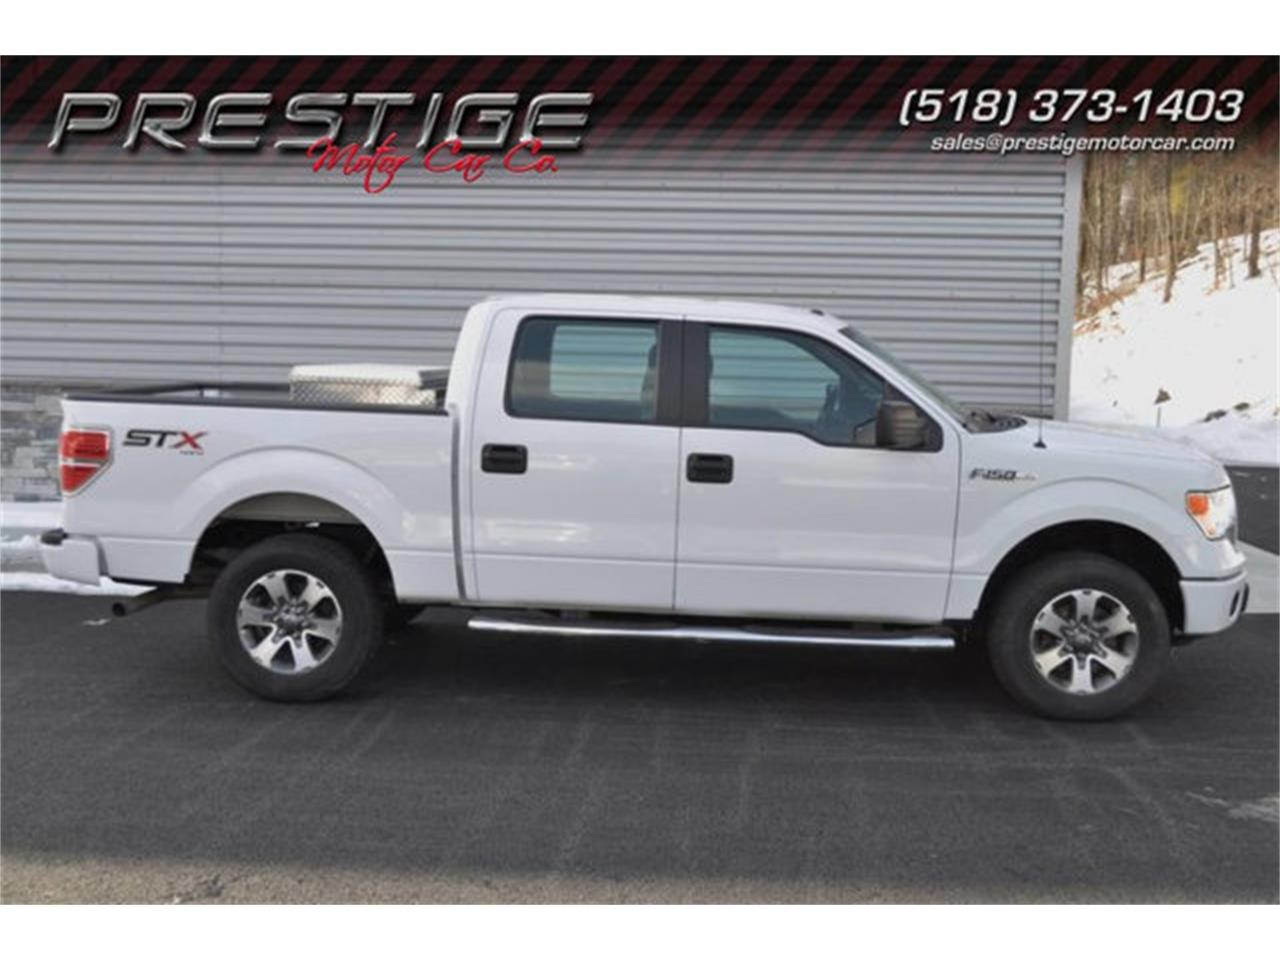 2014 Ford F150 For Sale >> 2014 Ford F150 For Sale In Clifton Park Ny Classiccarsbay Com